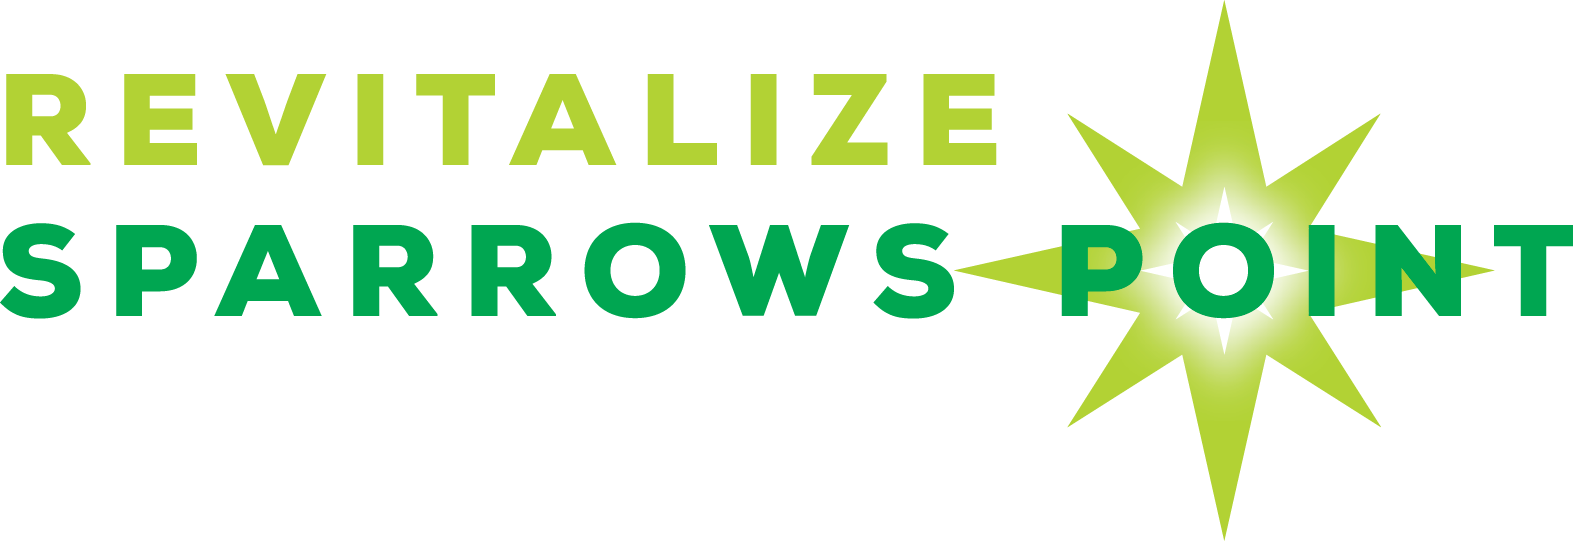 Revitalize Sparrows Point